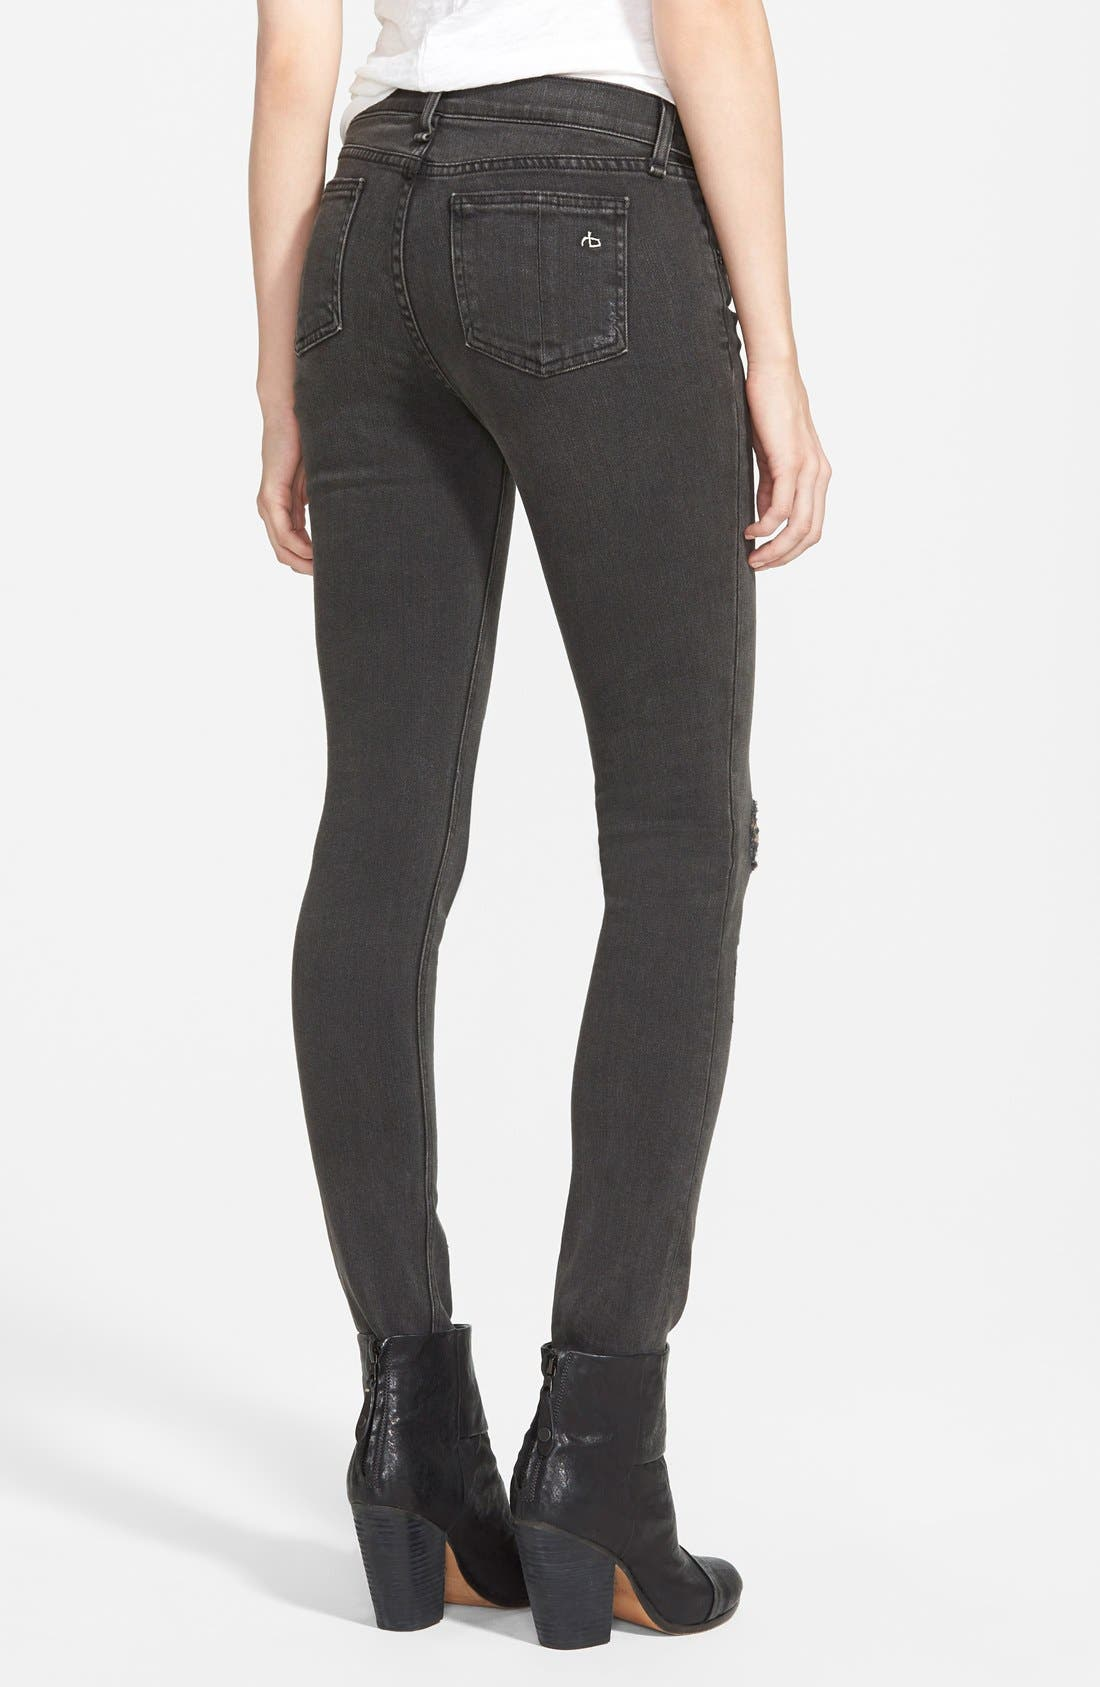 RAG & BONE, JEAN Shredded Skinny Jeans, Alternate thumbnail 4, color, 001